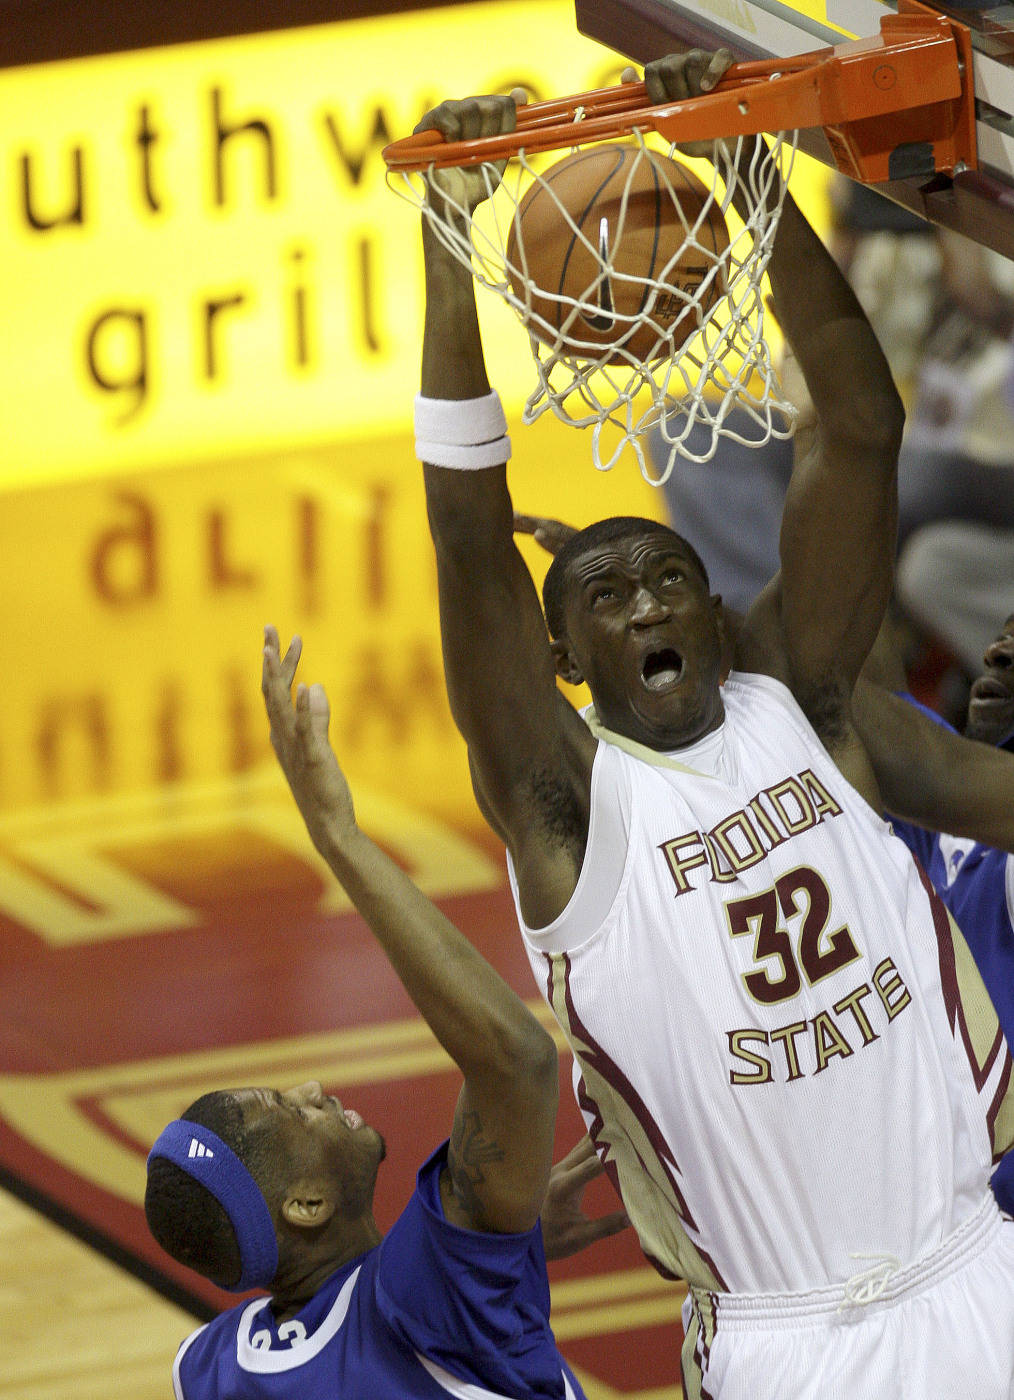 Florida State's Solomon Alabi scores over Georgia State's Xavier Hansbro during the first half of an NCAA college basketball game, Tuesday, Dec. 15, 2009, in Tallahassee, Fla.(AP Photo/Phil Coale)